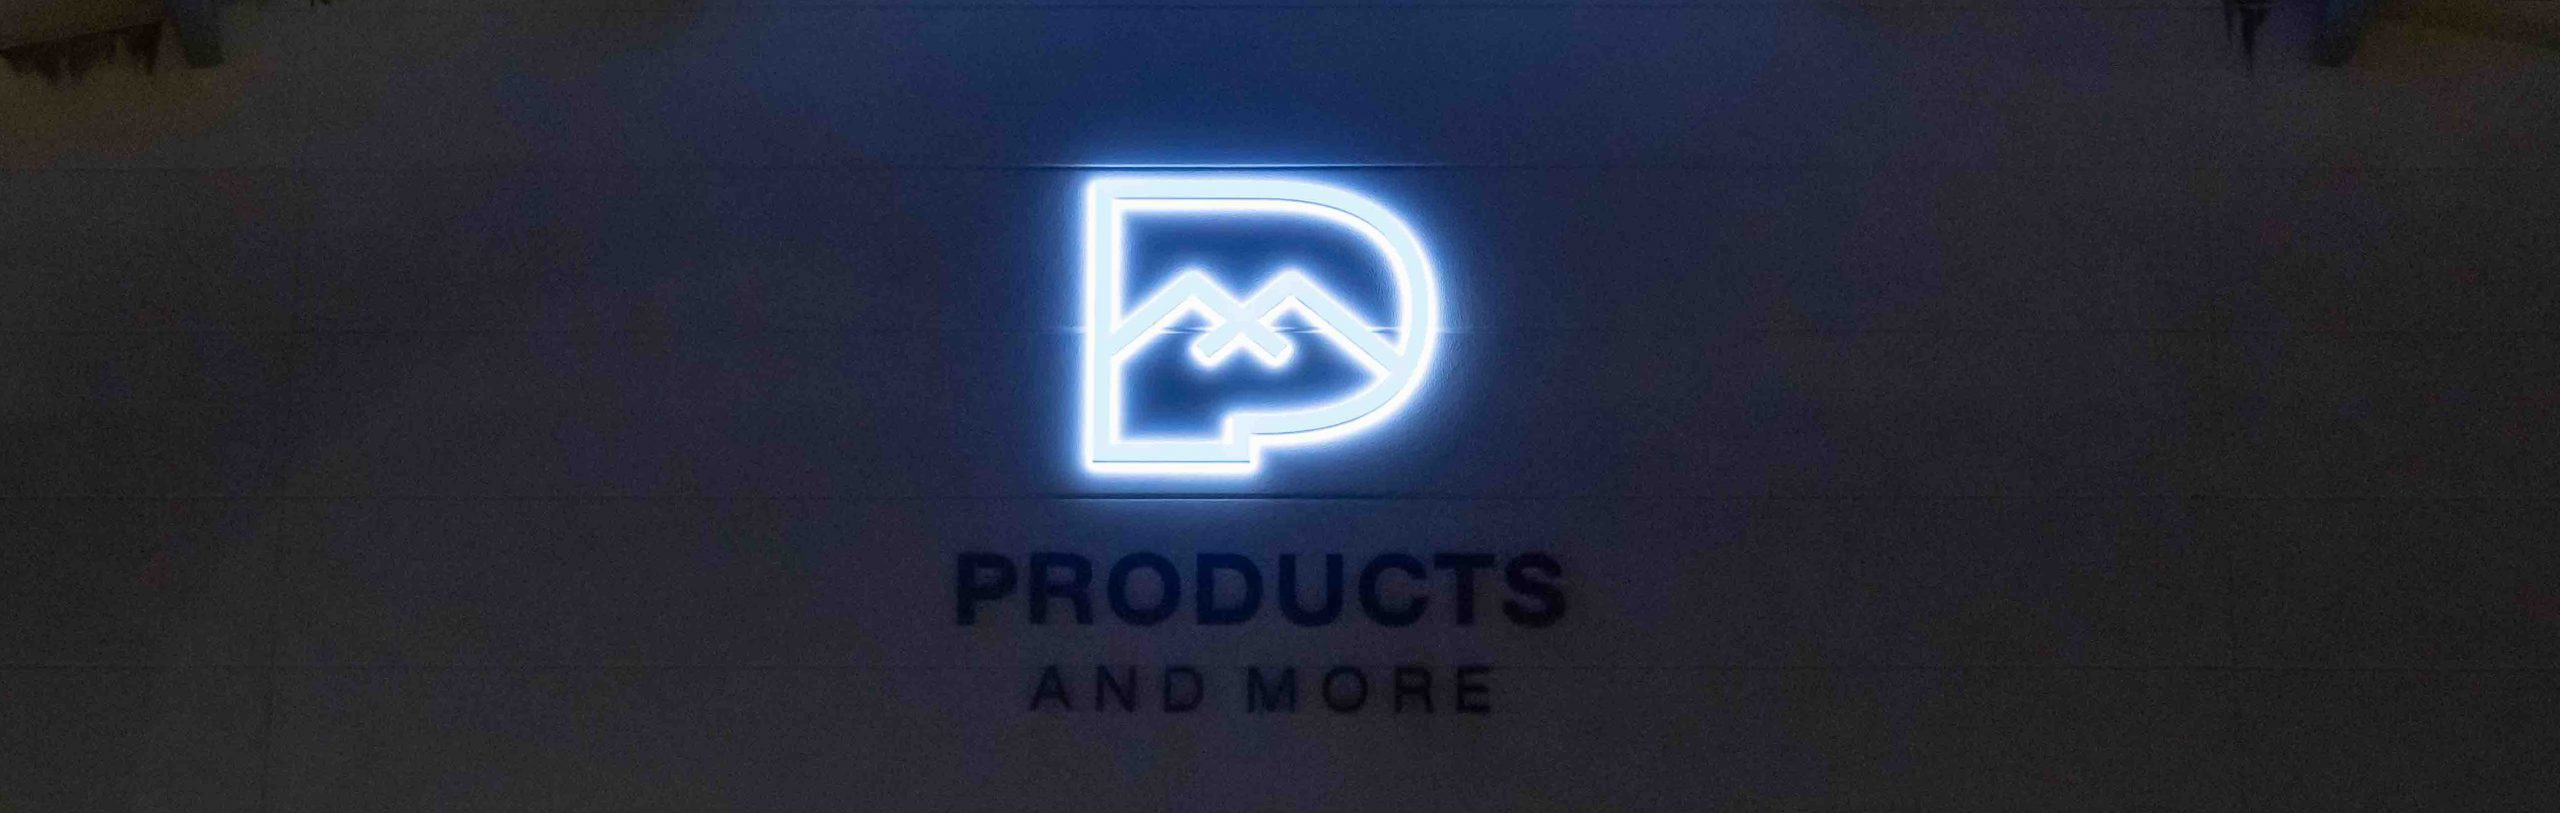 Büro Products and More